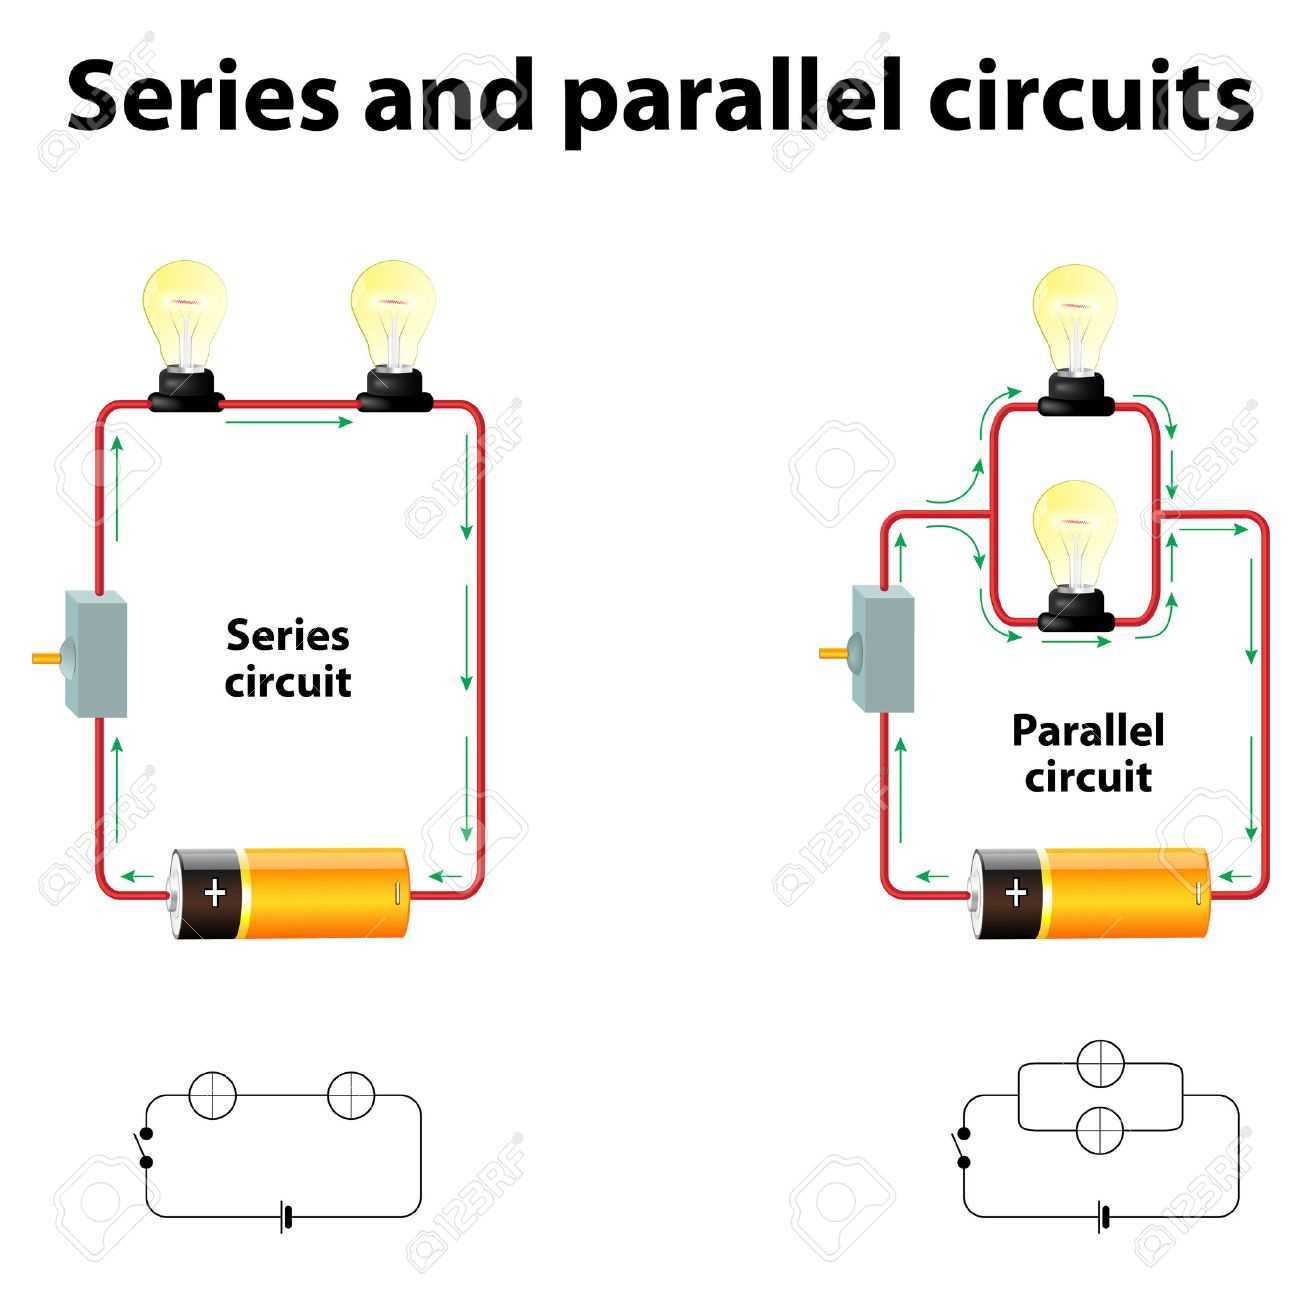 Series and parallel circuits in series are connected along a series and parallel circuits in series are connected along a single path so the pooptronica Choice Image